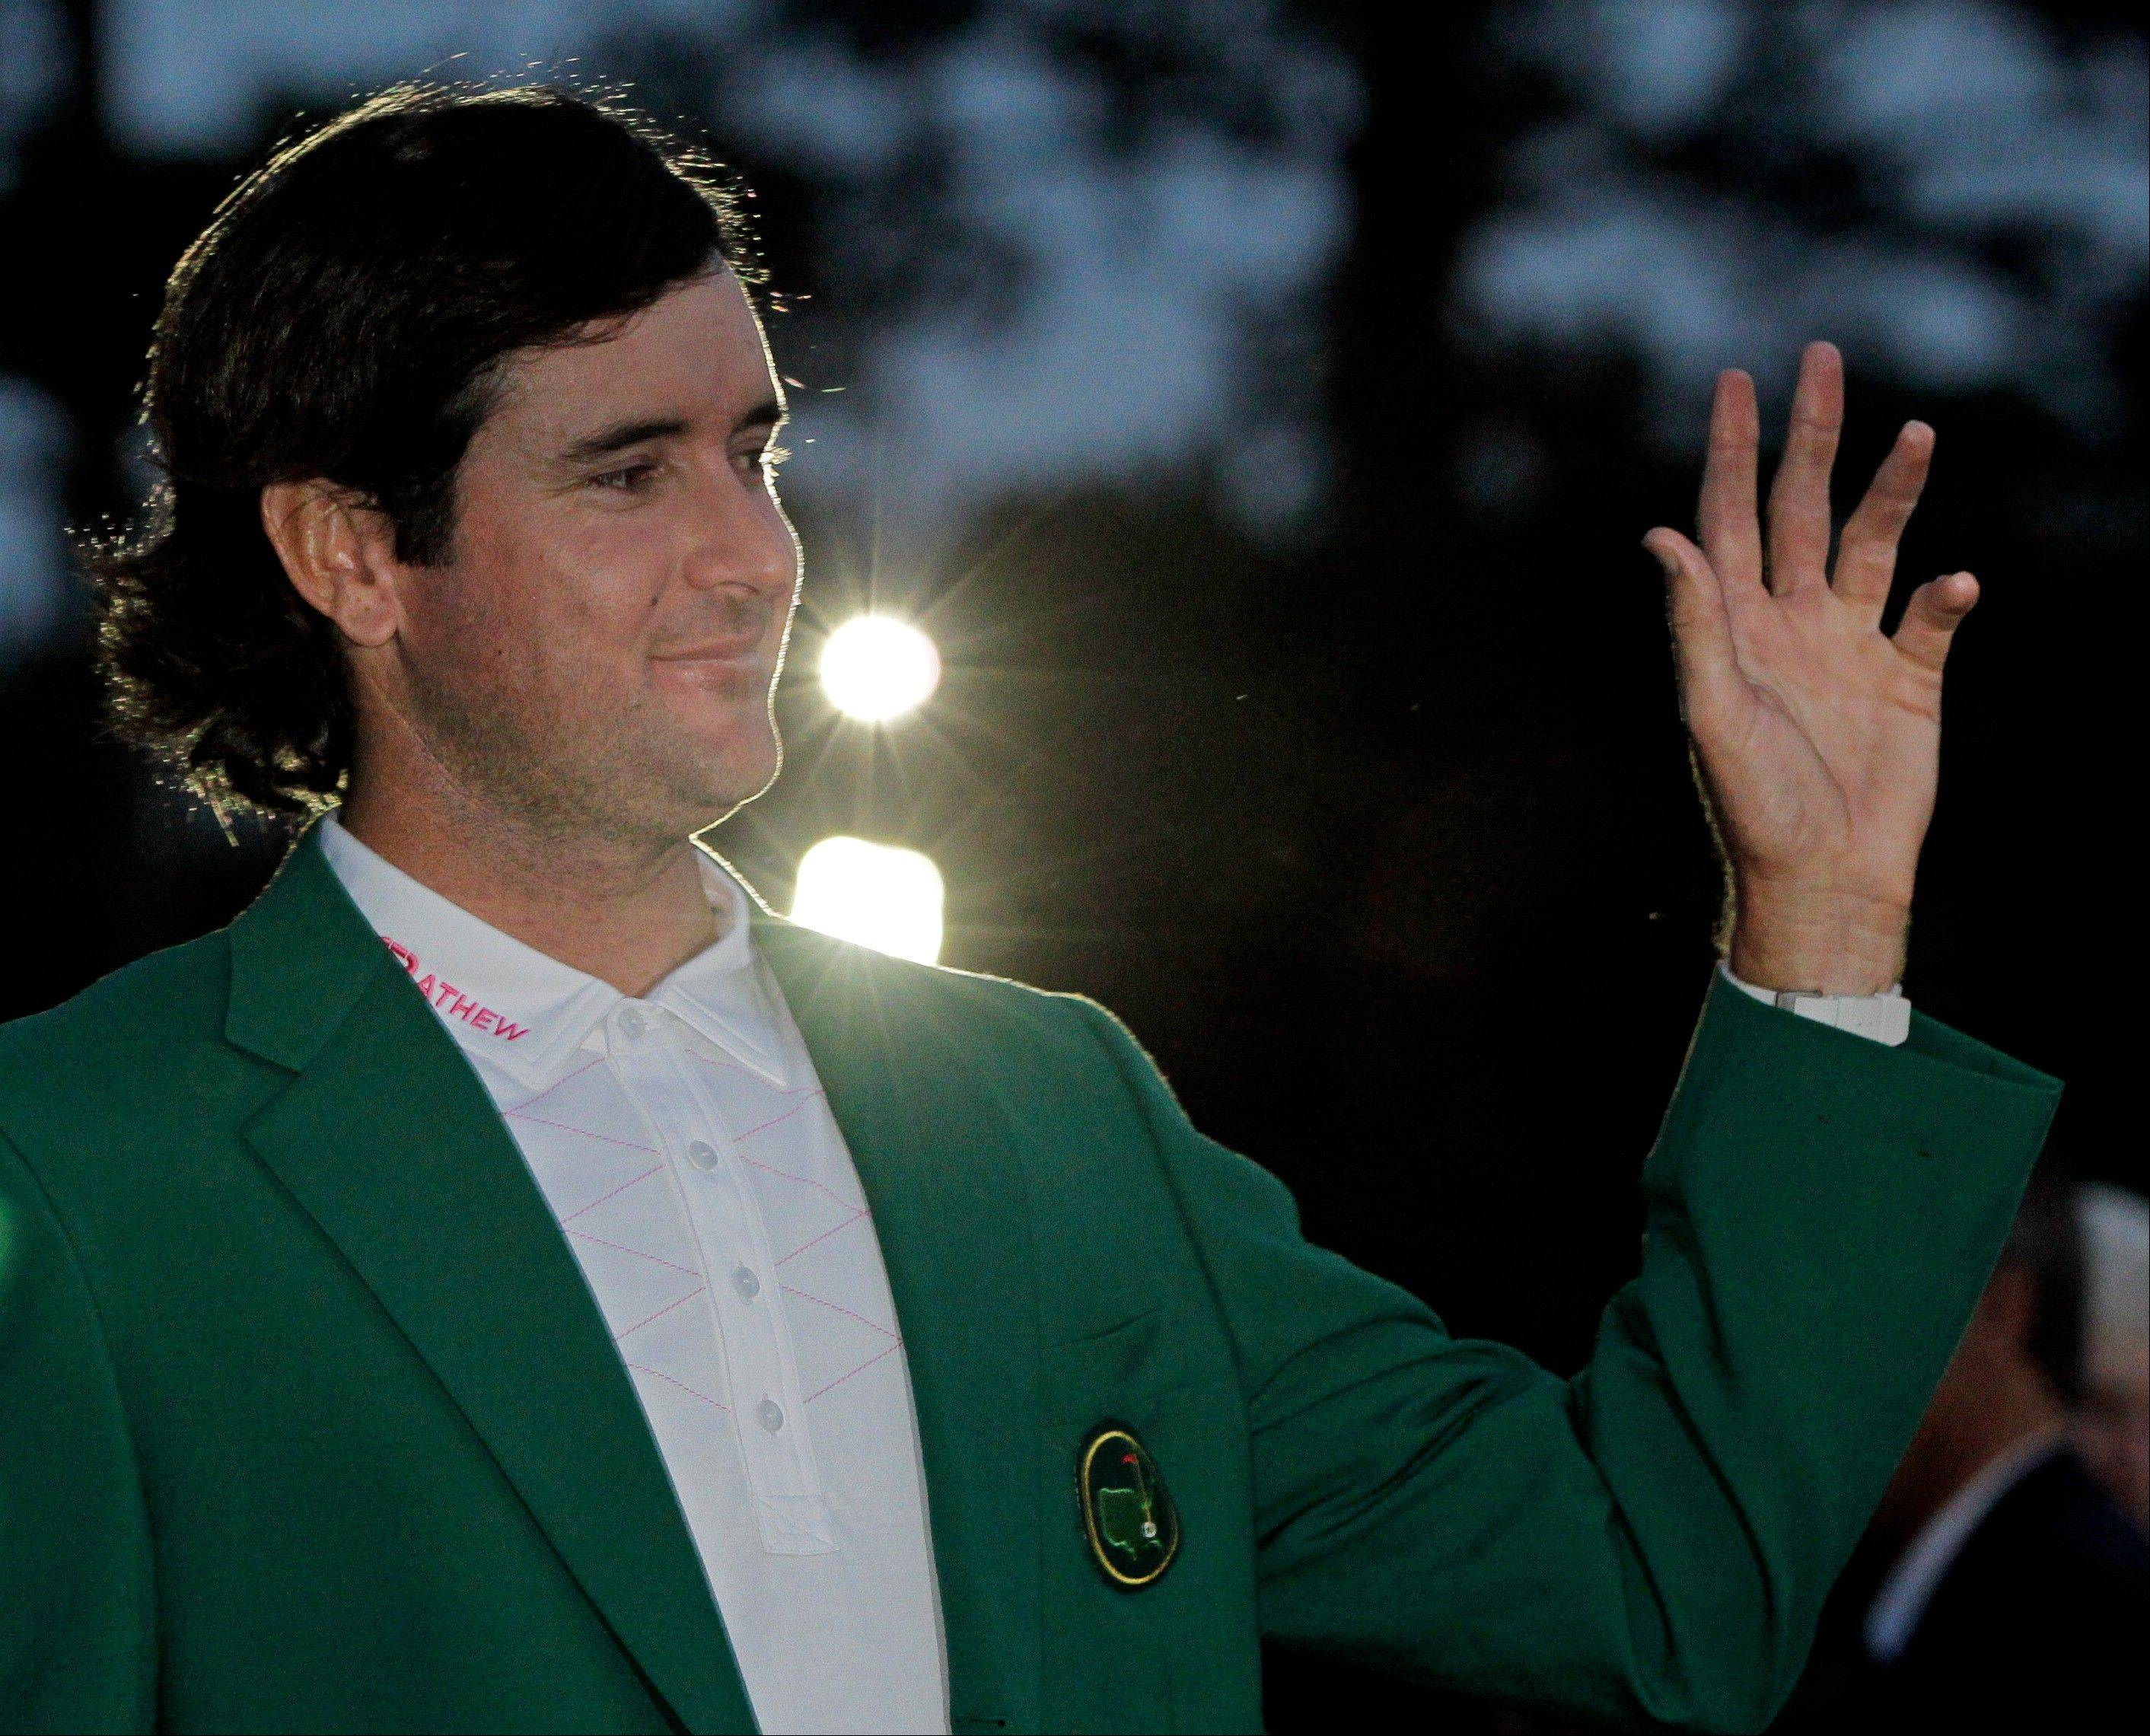 Bubba Watson, who won the green jacket at the 2012 Masters in a sudden-death playoff, also won the admiration of a caddie�s wife when he made good on a bet.